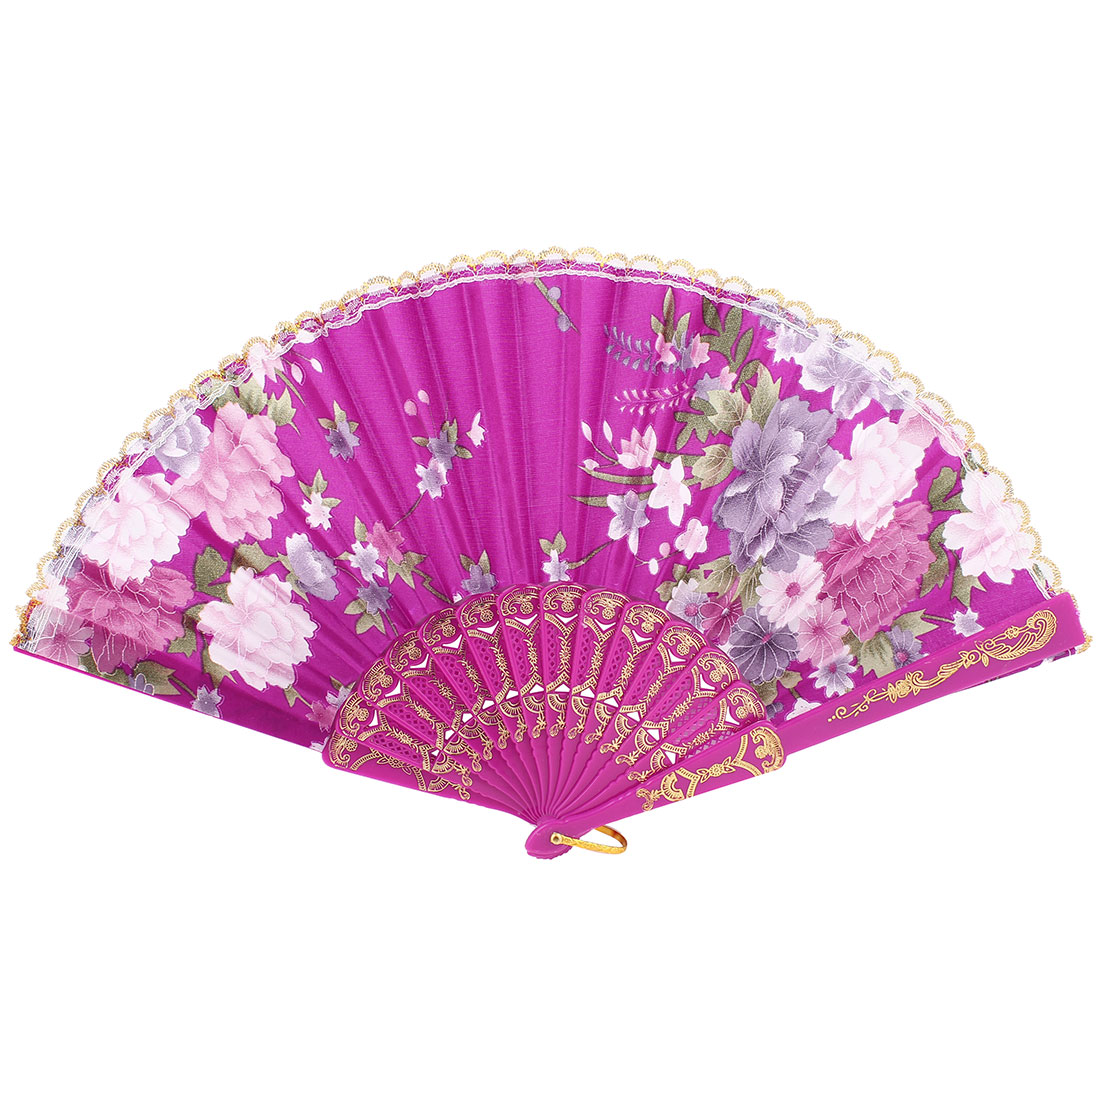 Plastic Folding Flower Print Fuchsia Gold Tone Ribs Lace Decor Hand Fan